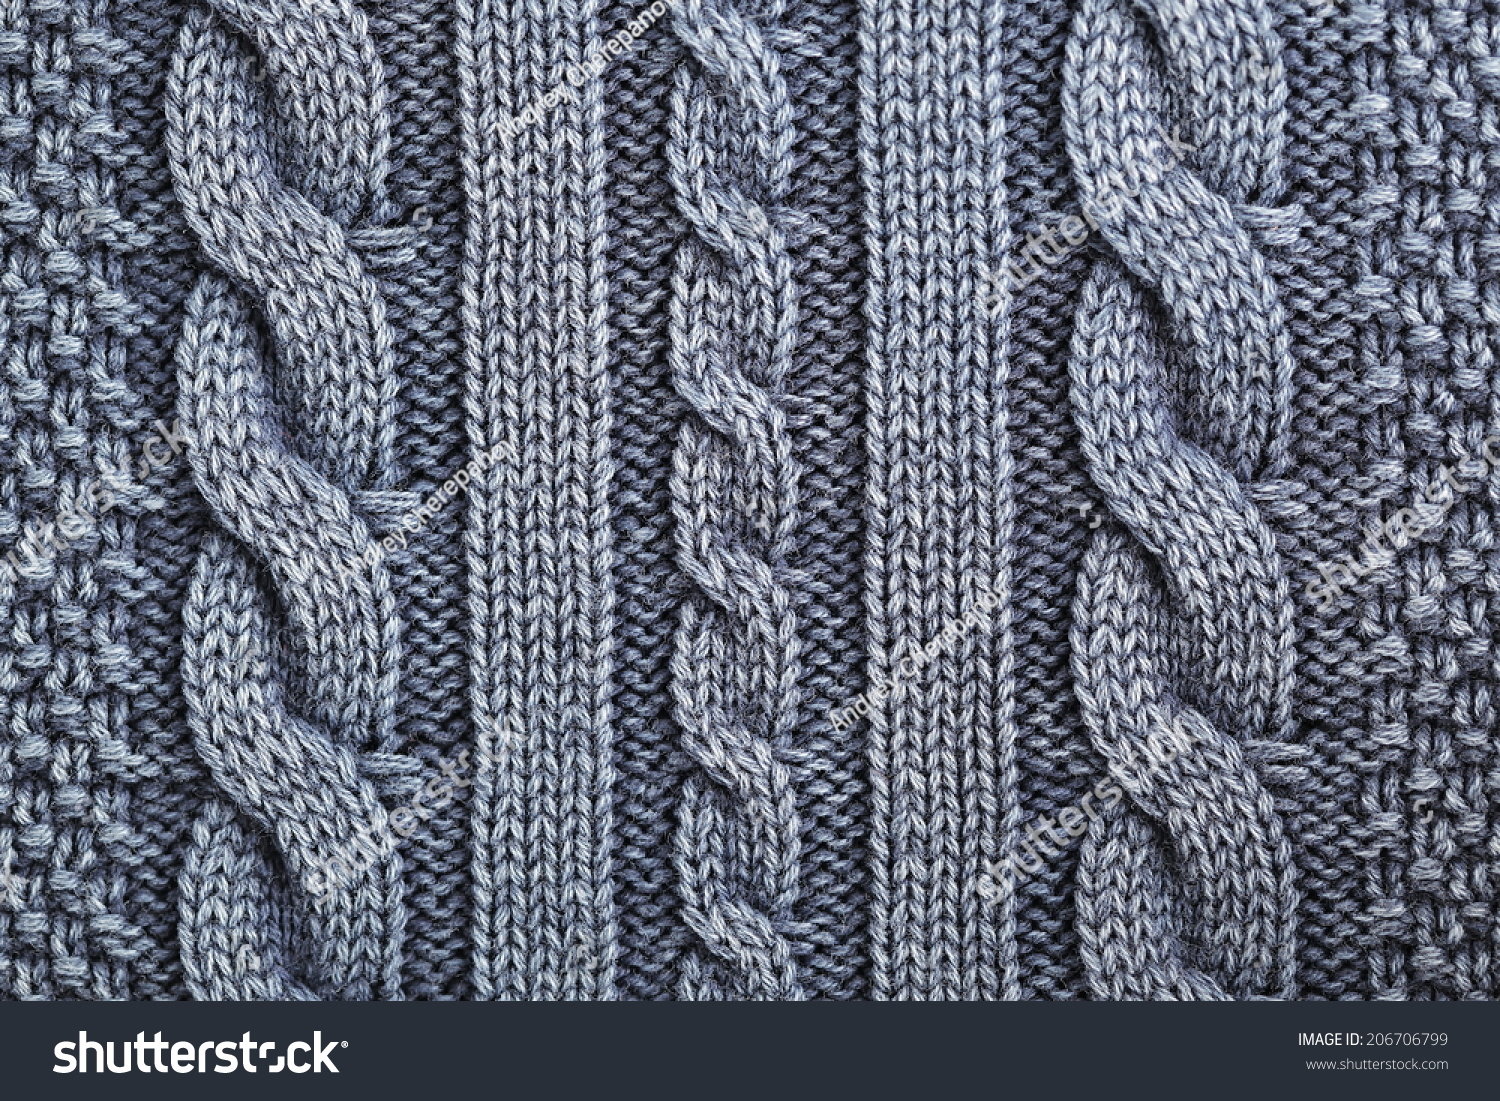 Knitting Background Texture : Unusual abstract blue knitted pattern background texture